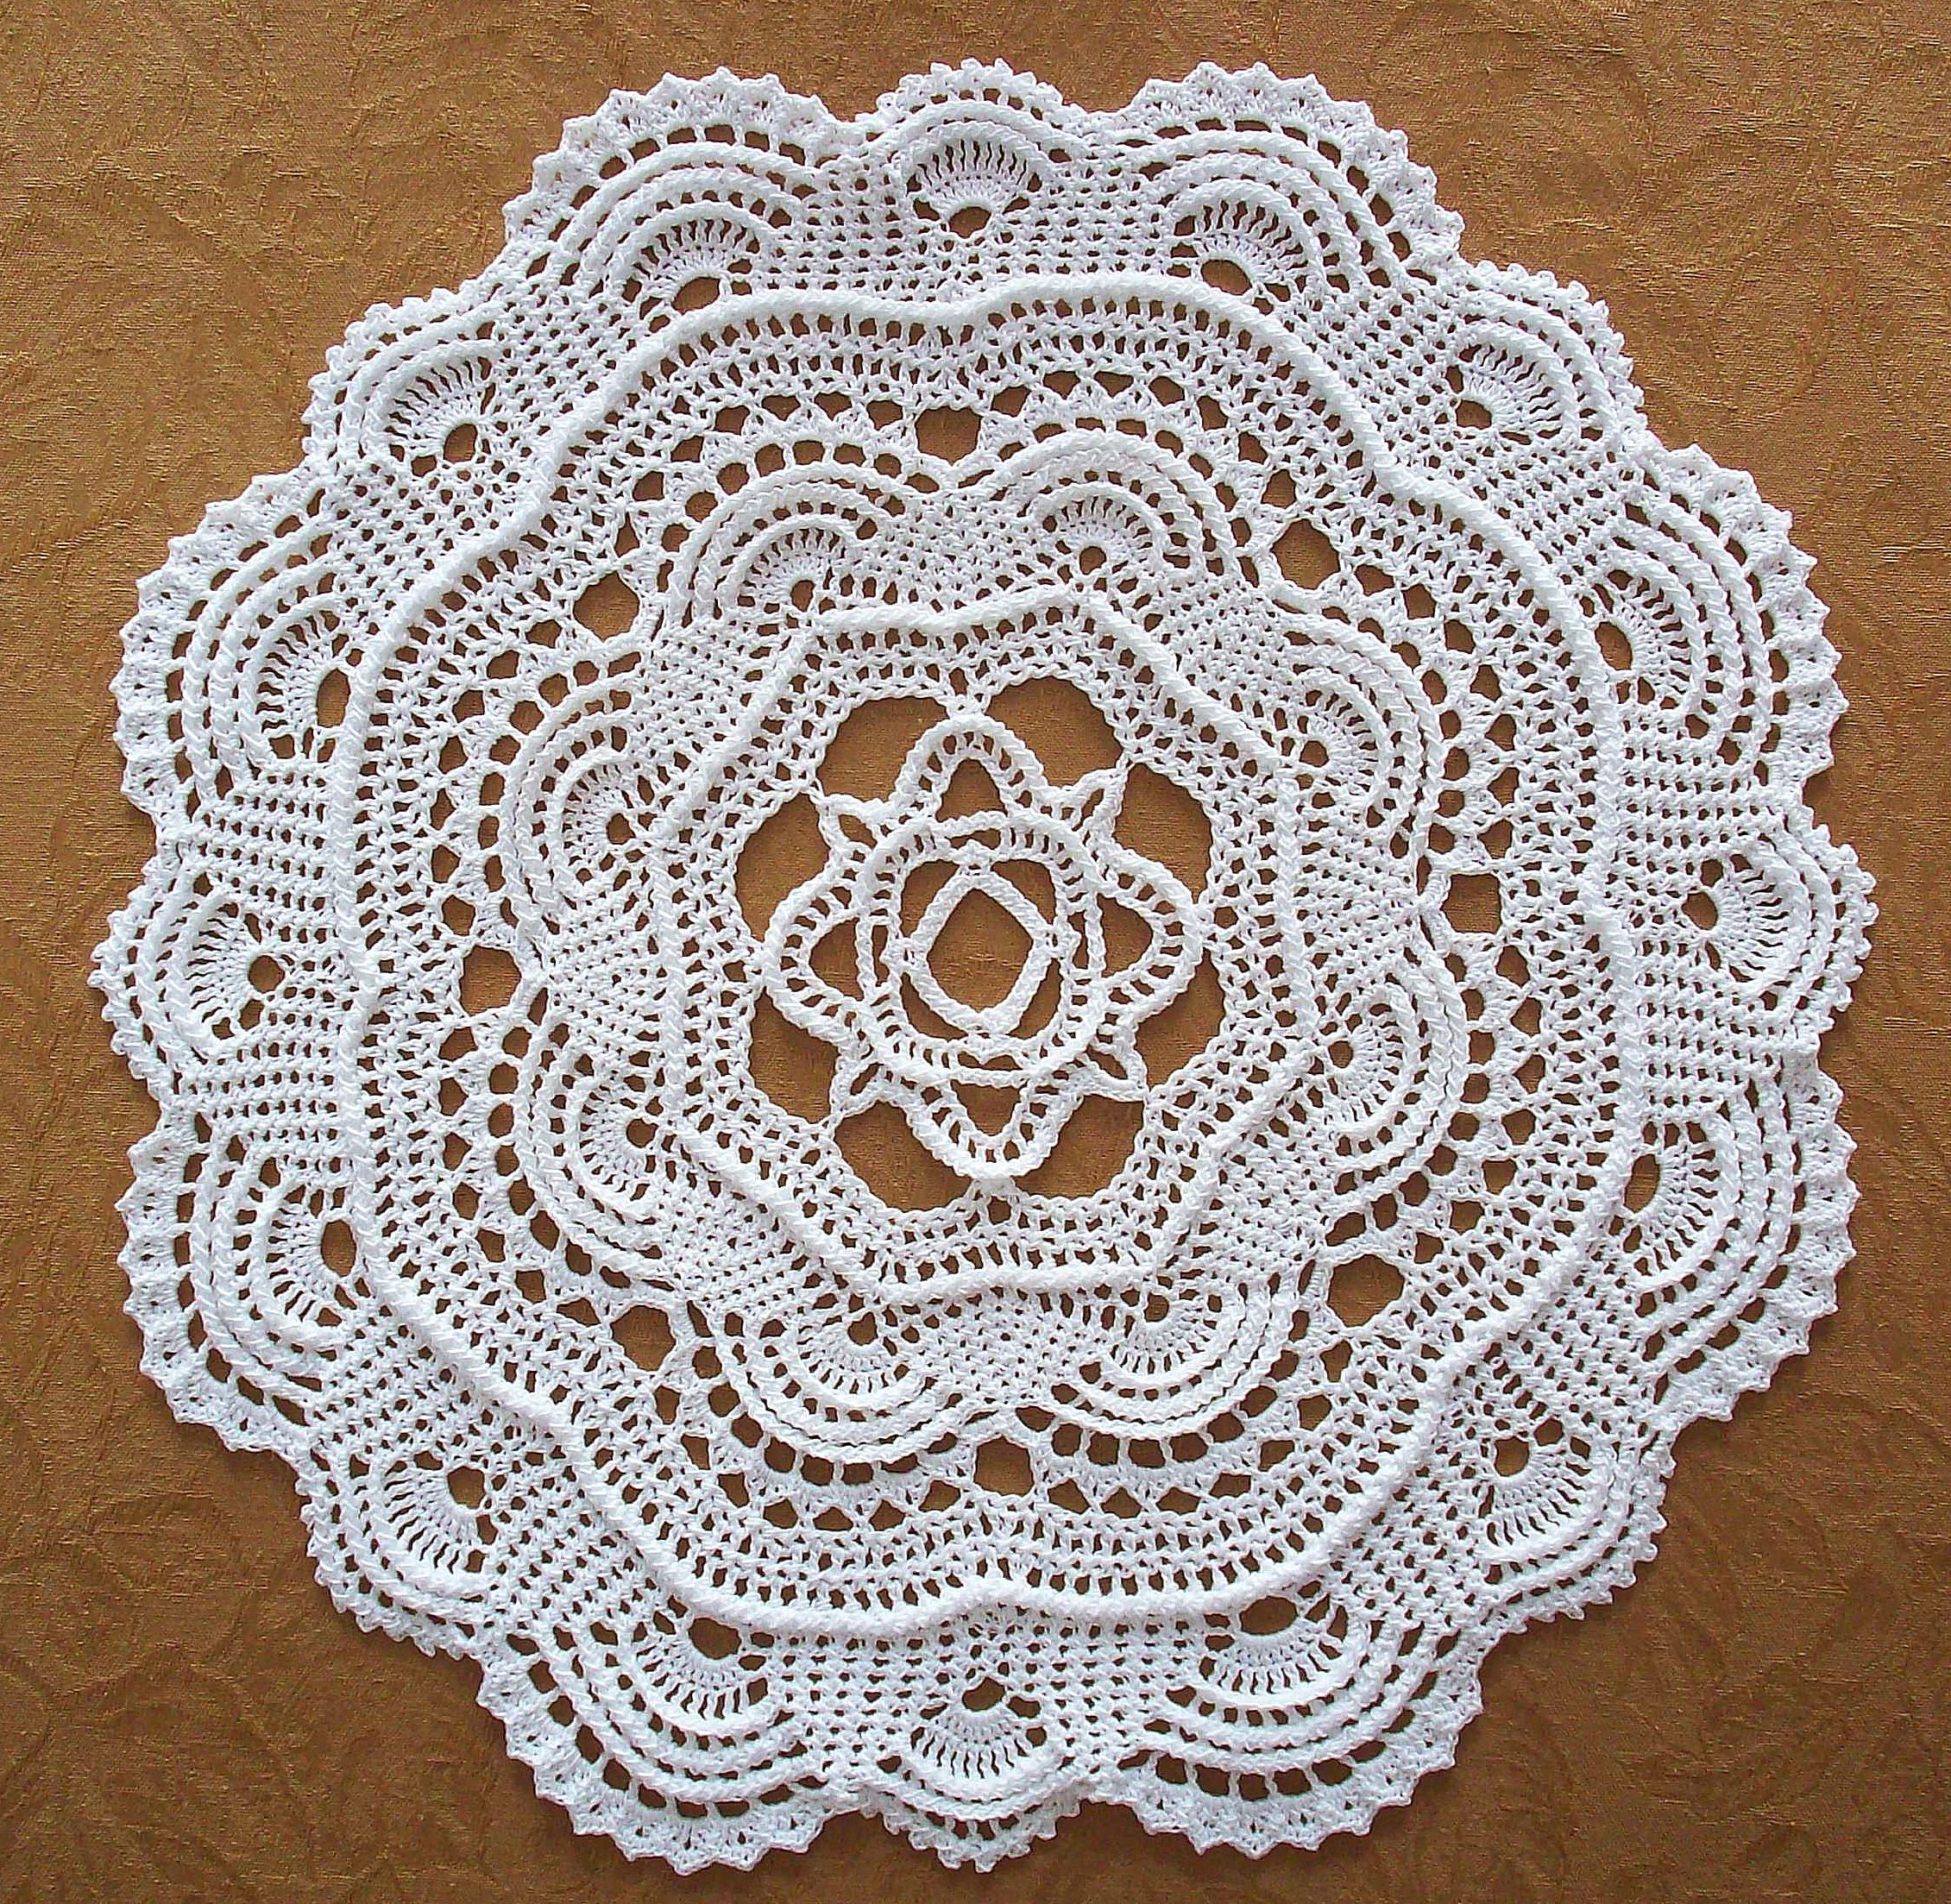 Round ribbed doily crochet hooks cord and steel crochet pattern for the round ribbed doily dimensions about 18 inches in diameter materials bankloansurffo Image collections